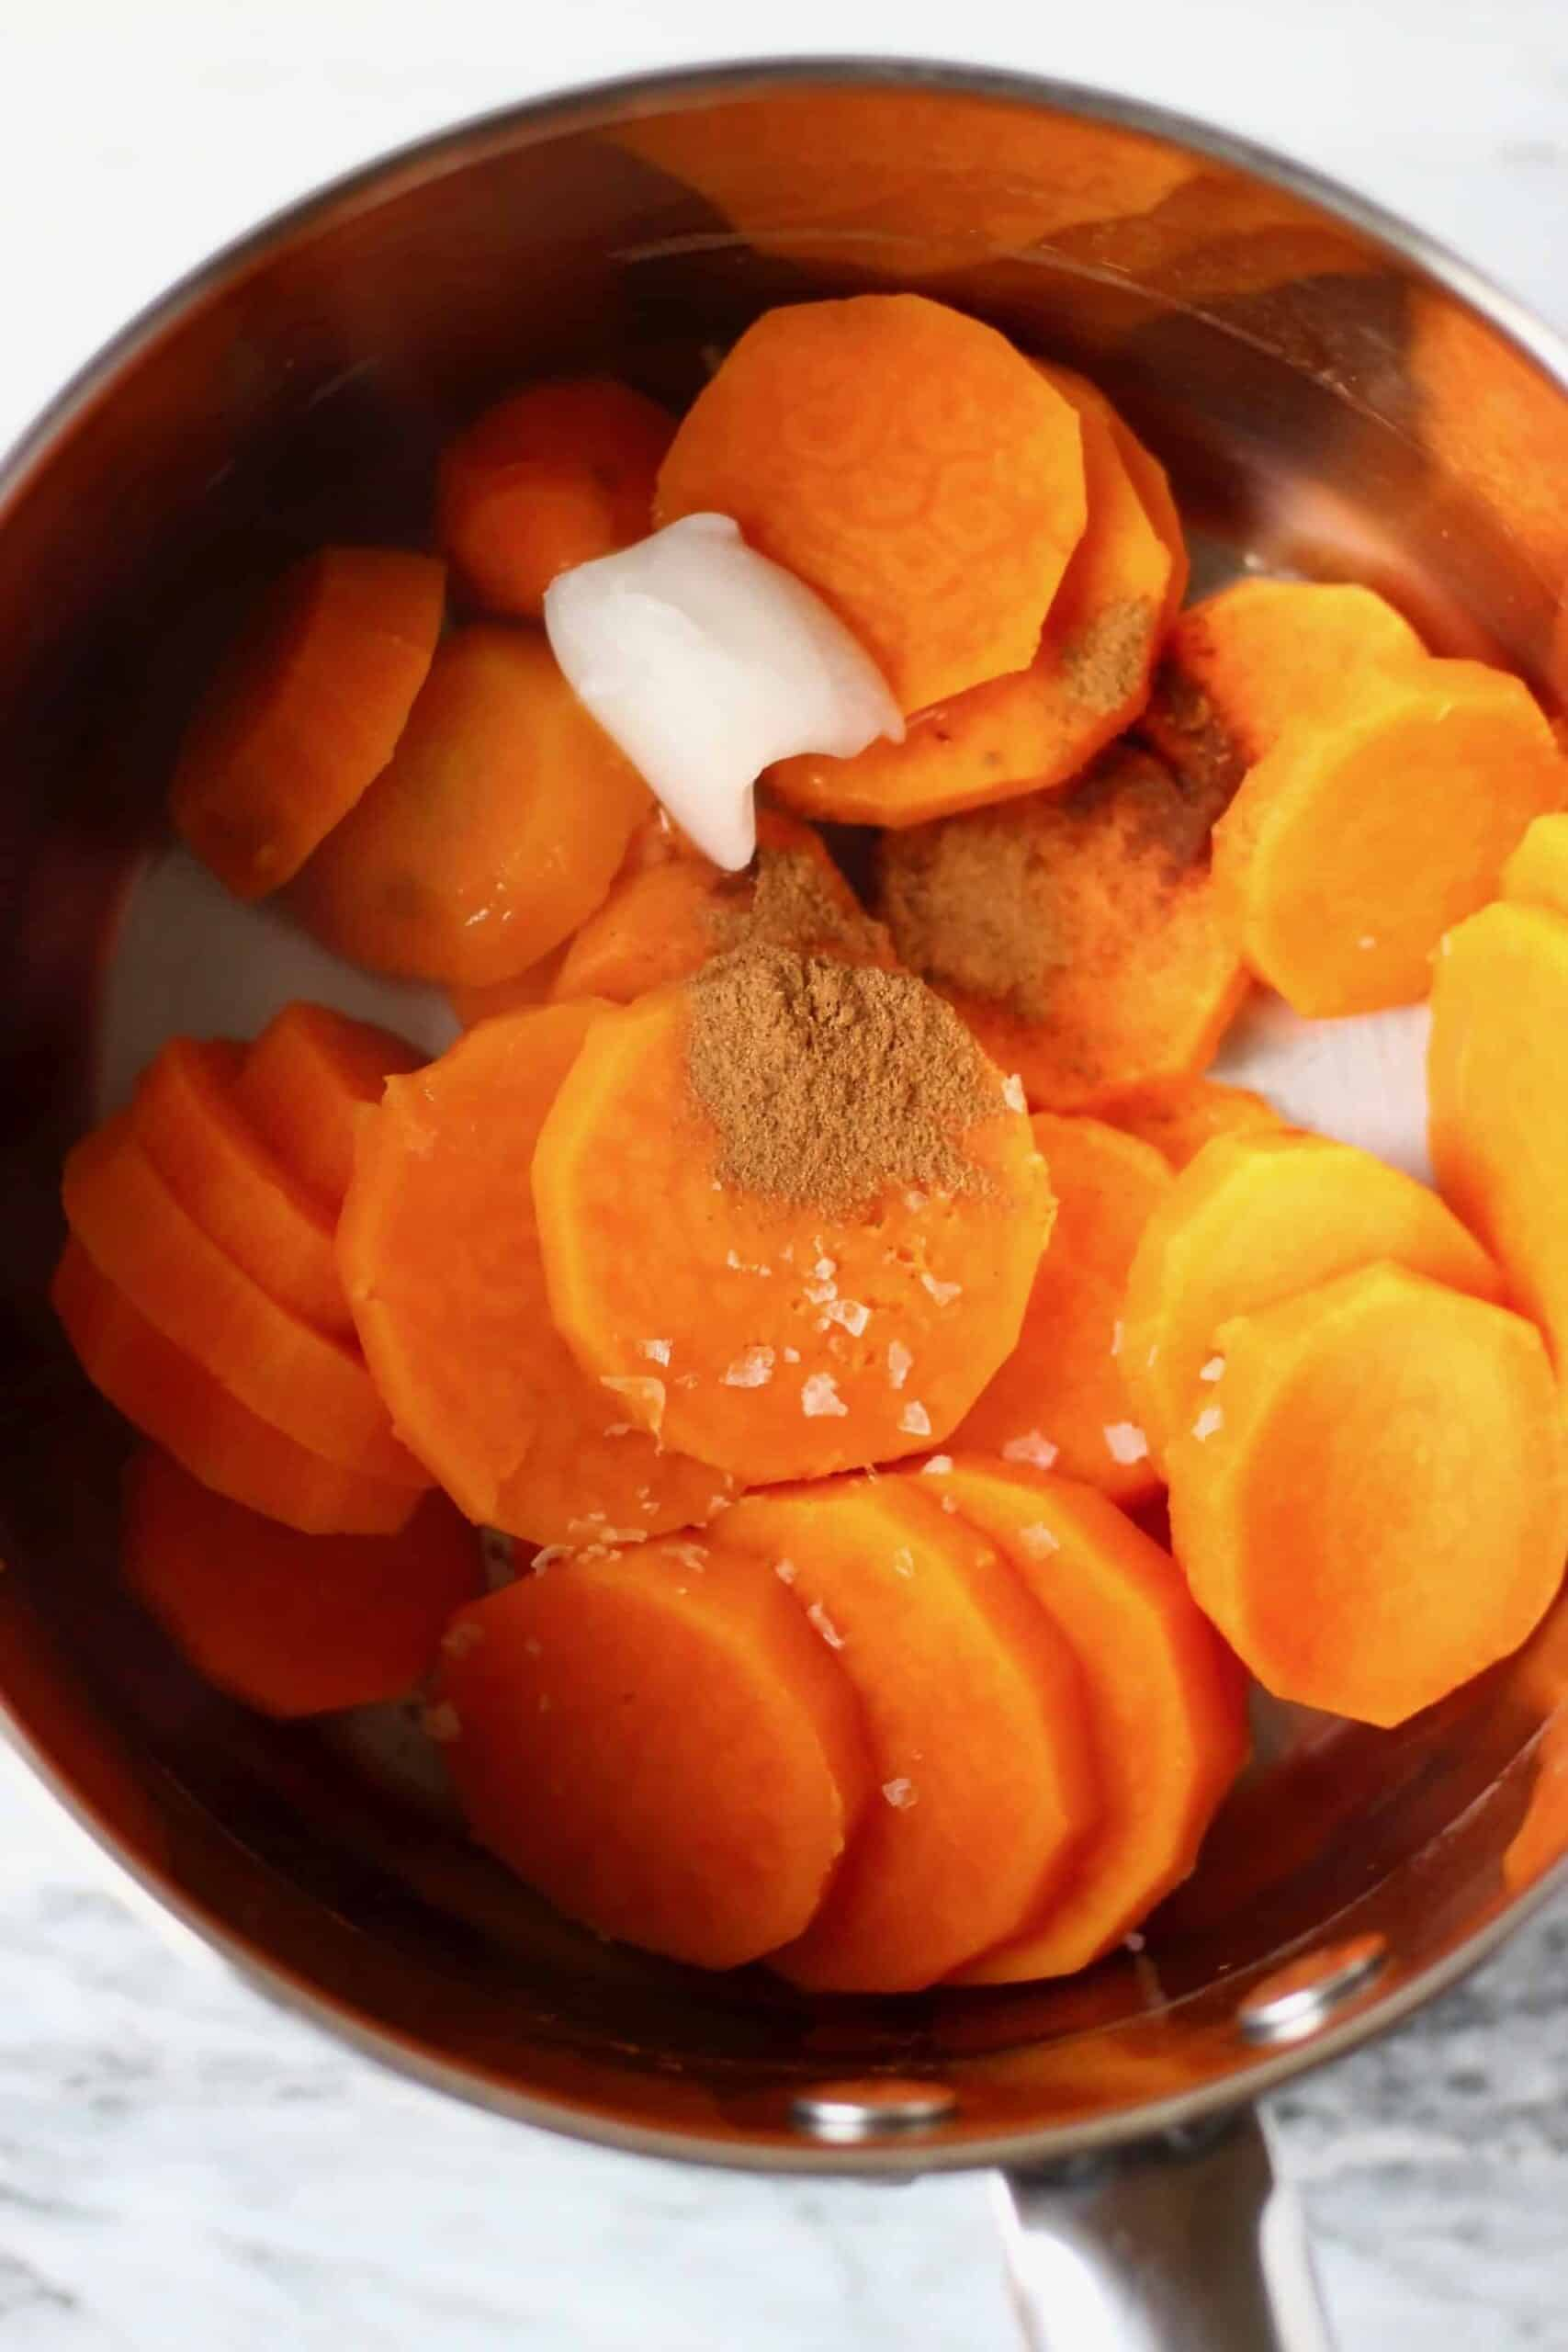 Cooked sweet potatoes, coconut oil and spices in a pan